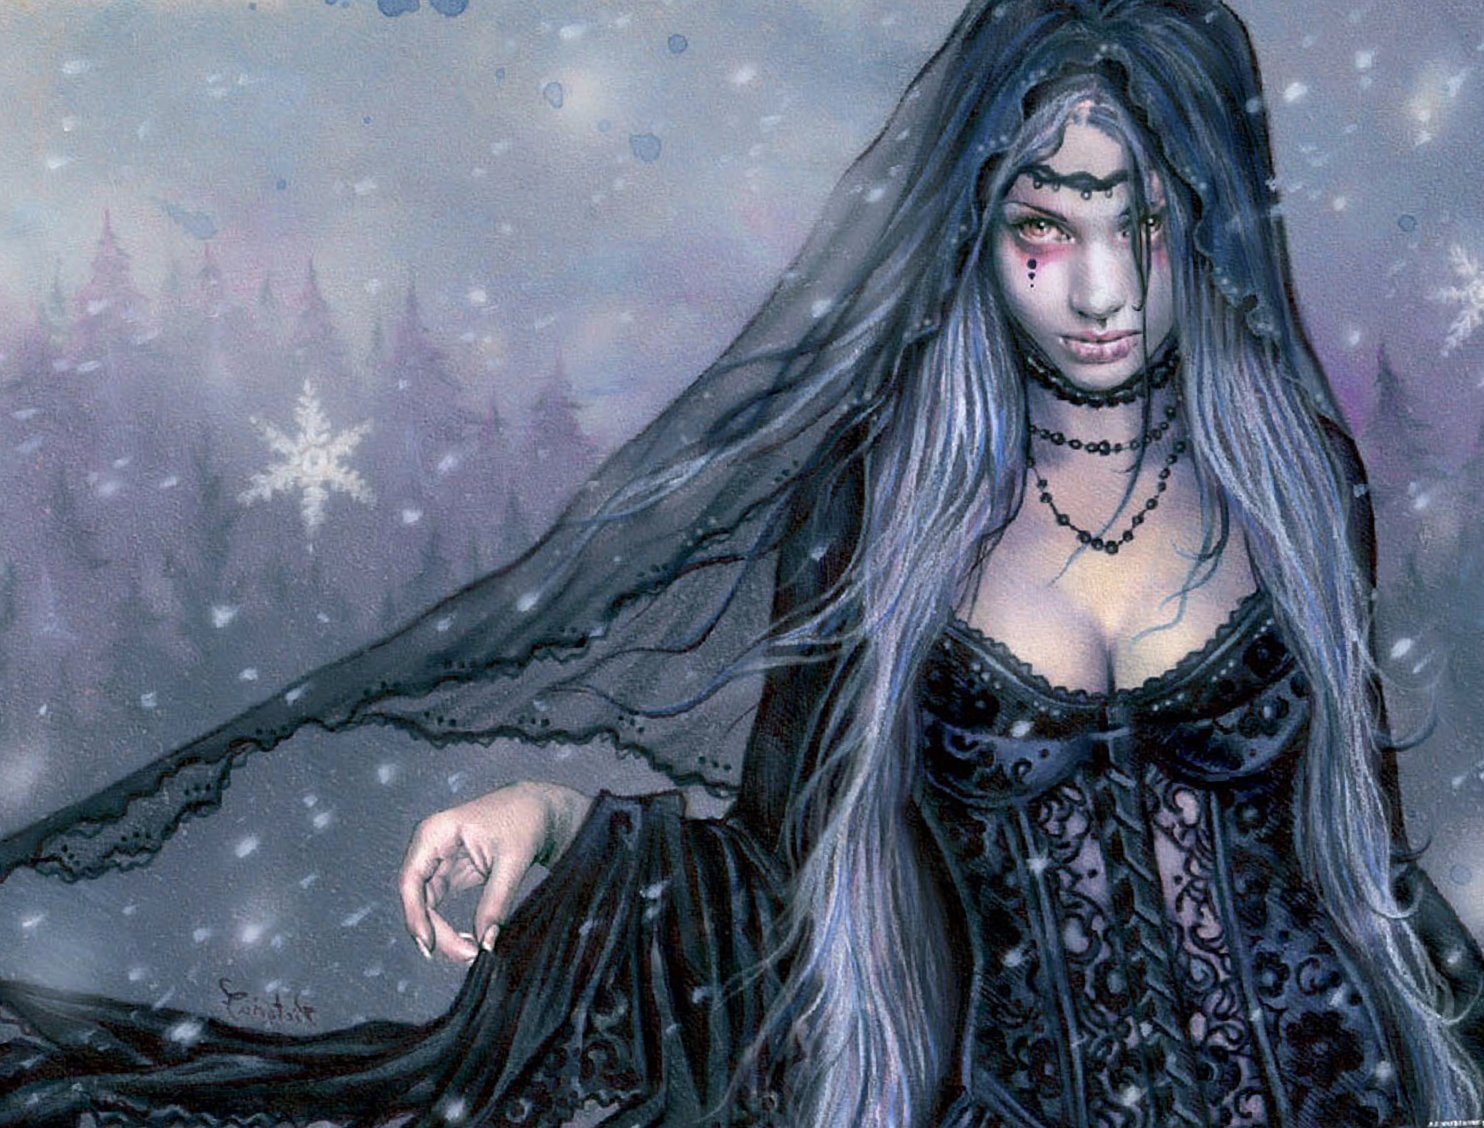 Sad Girl Mobile Wallpaper Gothic Fantasy Girl Sfondo And Sfondi 1484x1128 Id